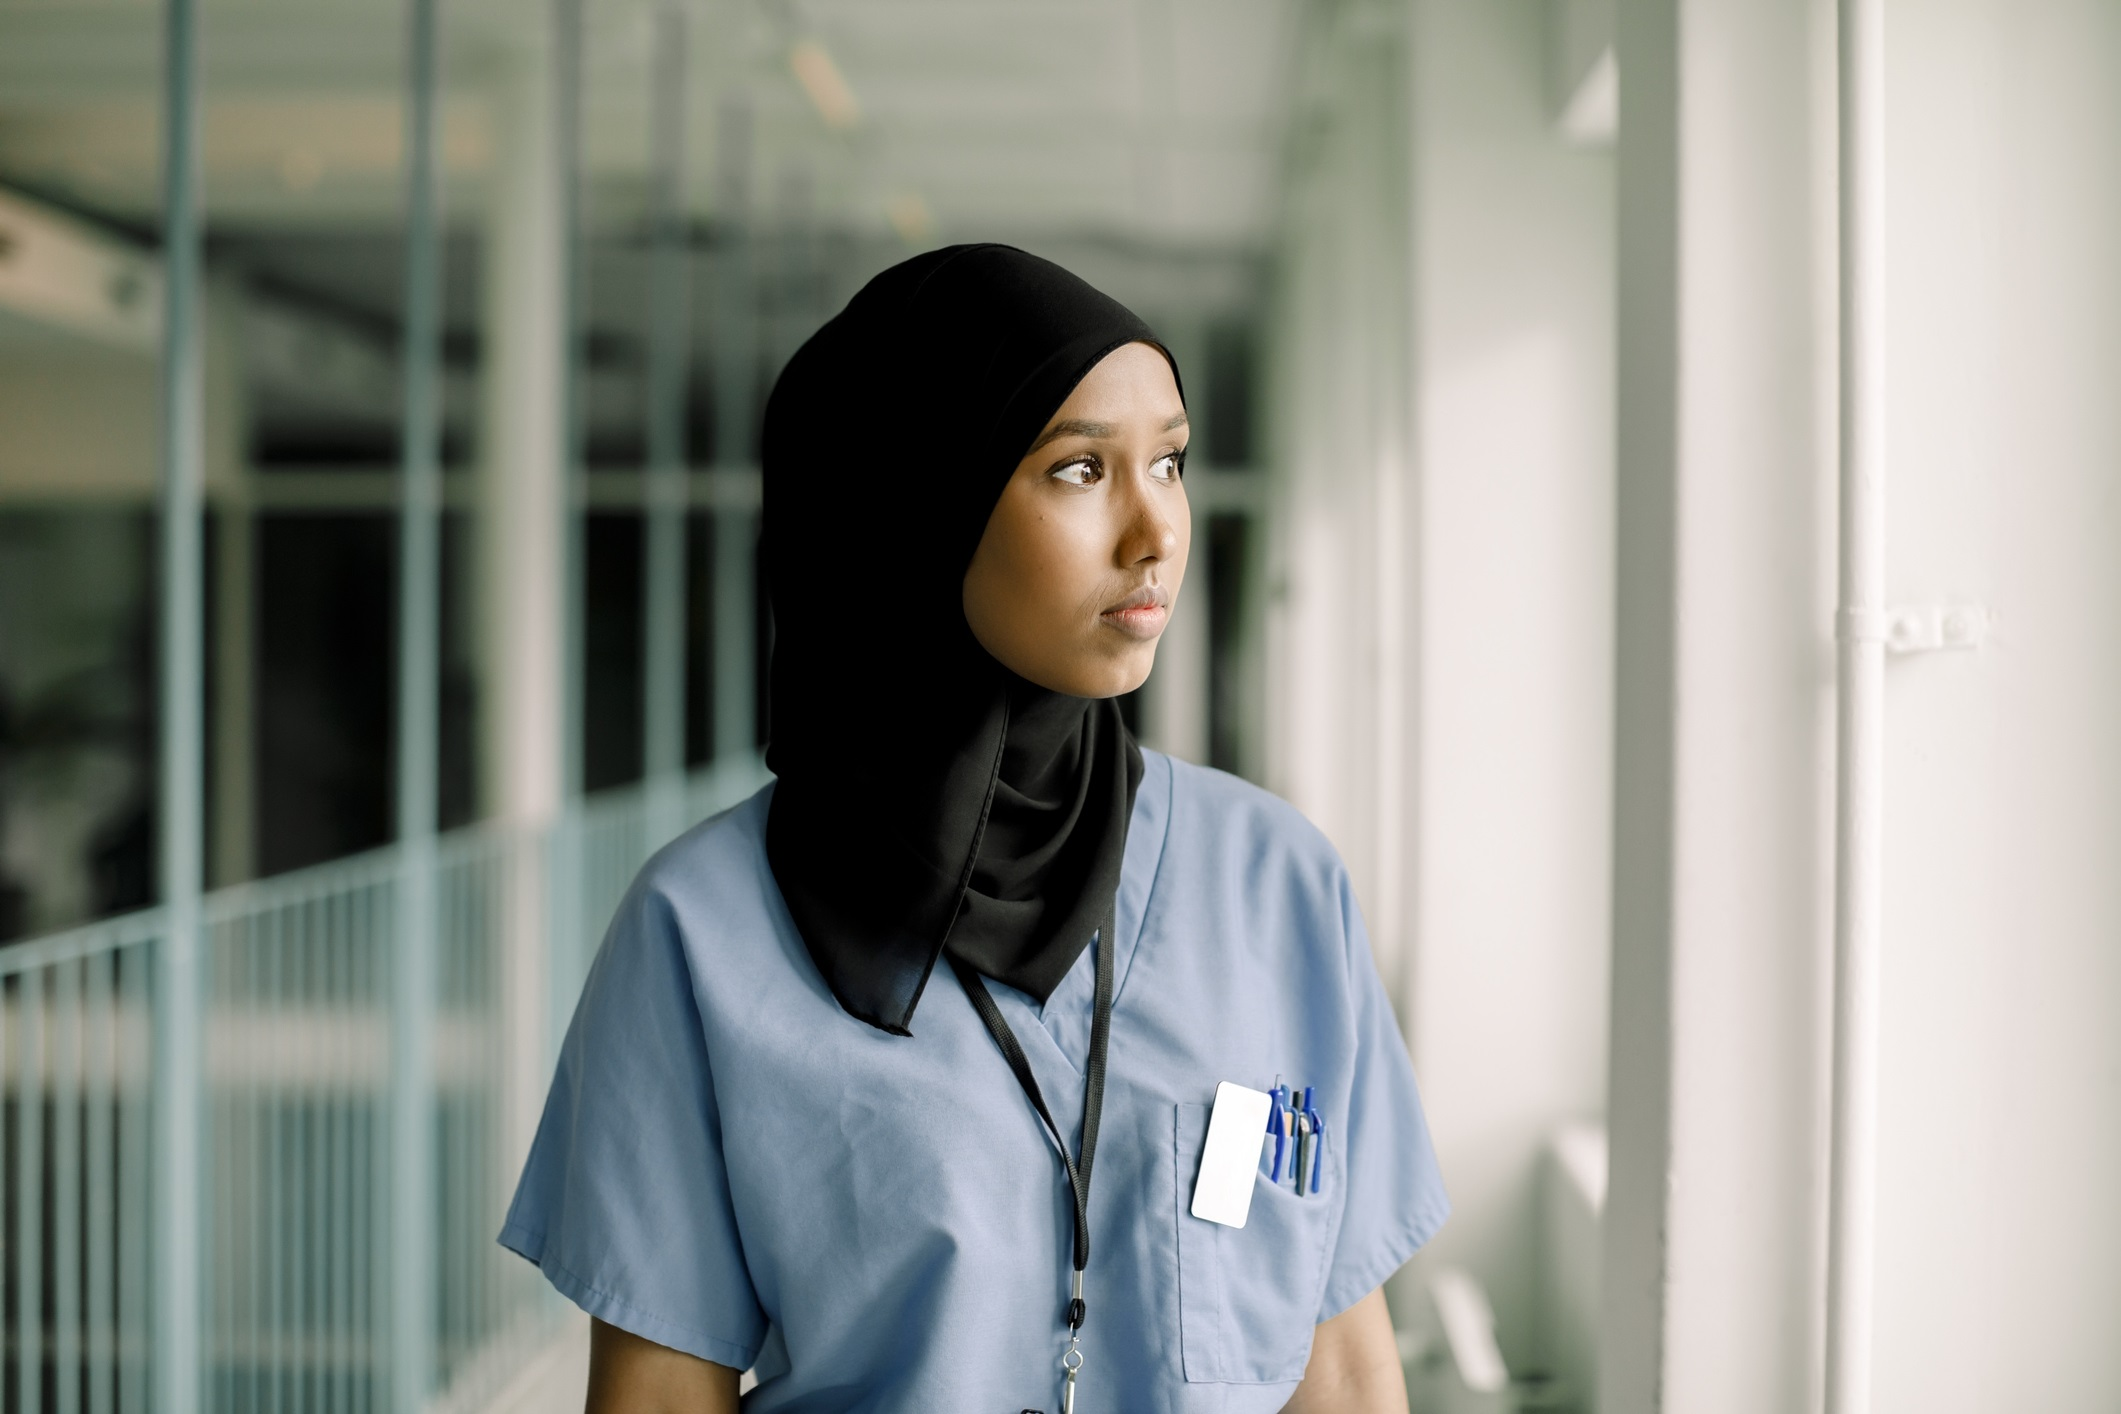 Nurses in Singapore can wear hijab or 'tudung' at work